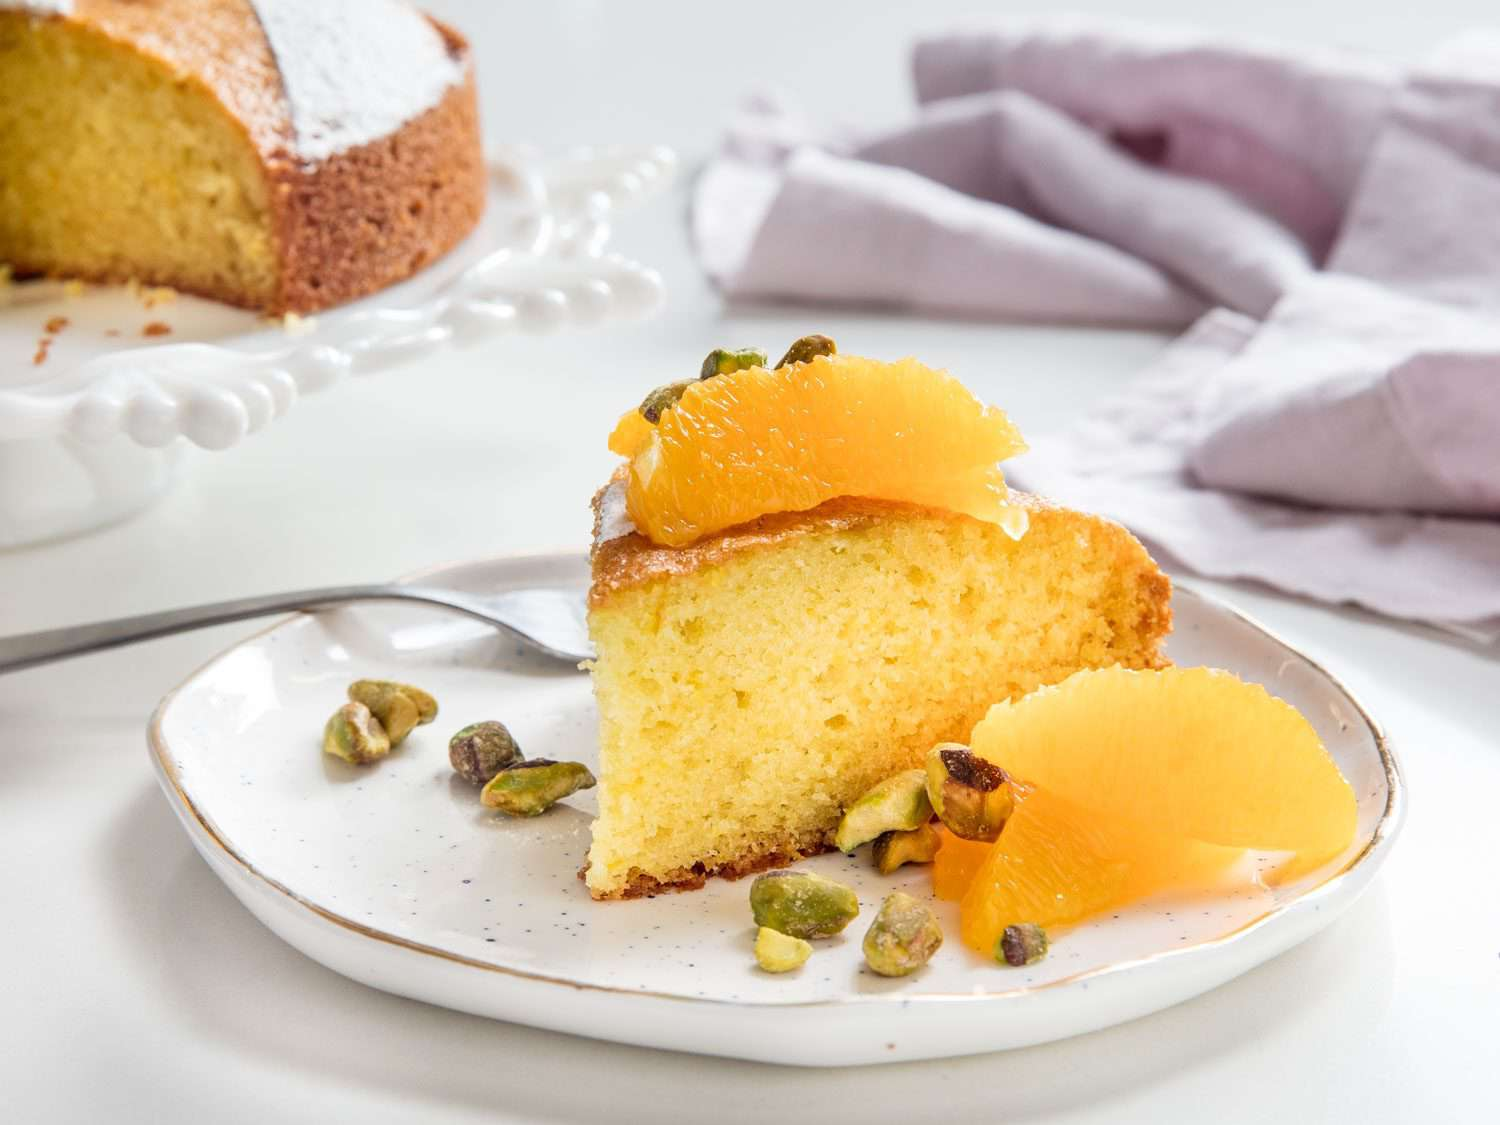 a slice of olive oil cake with fresh fruit and pistachios